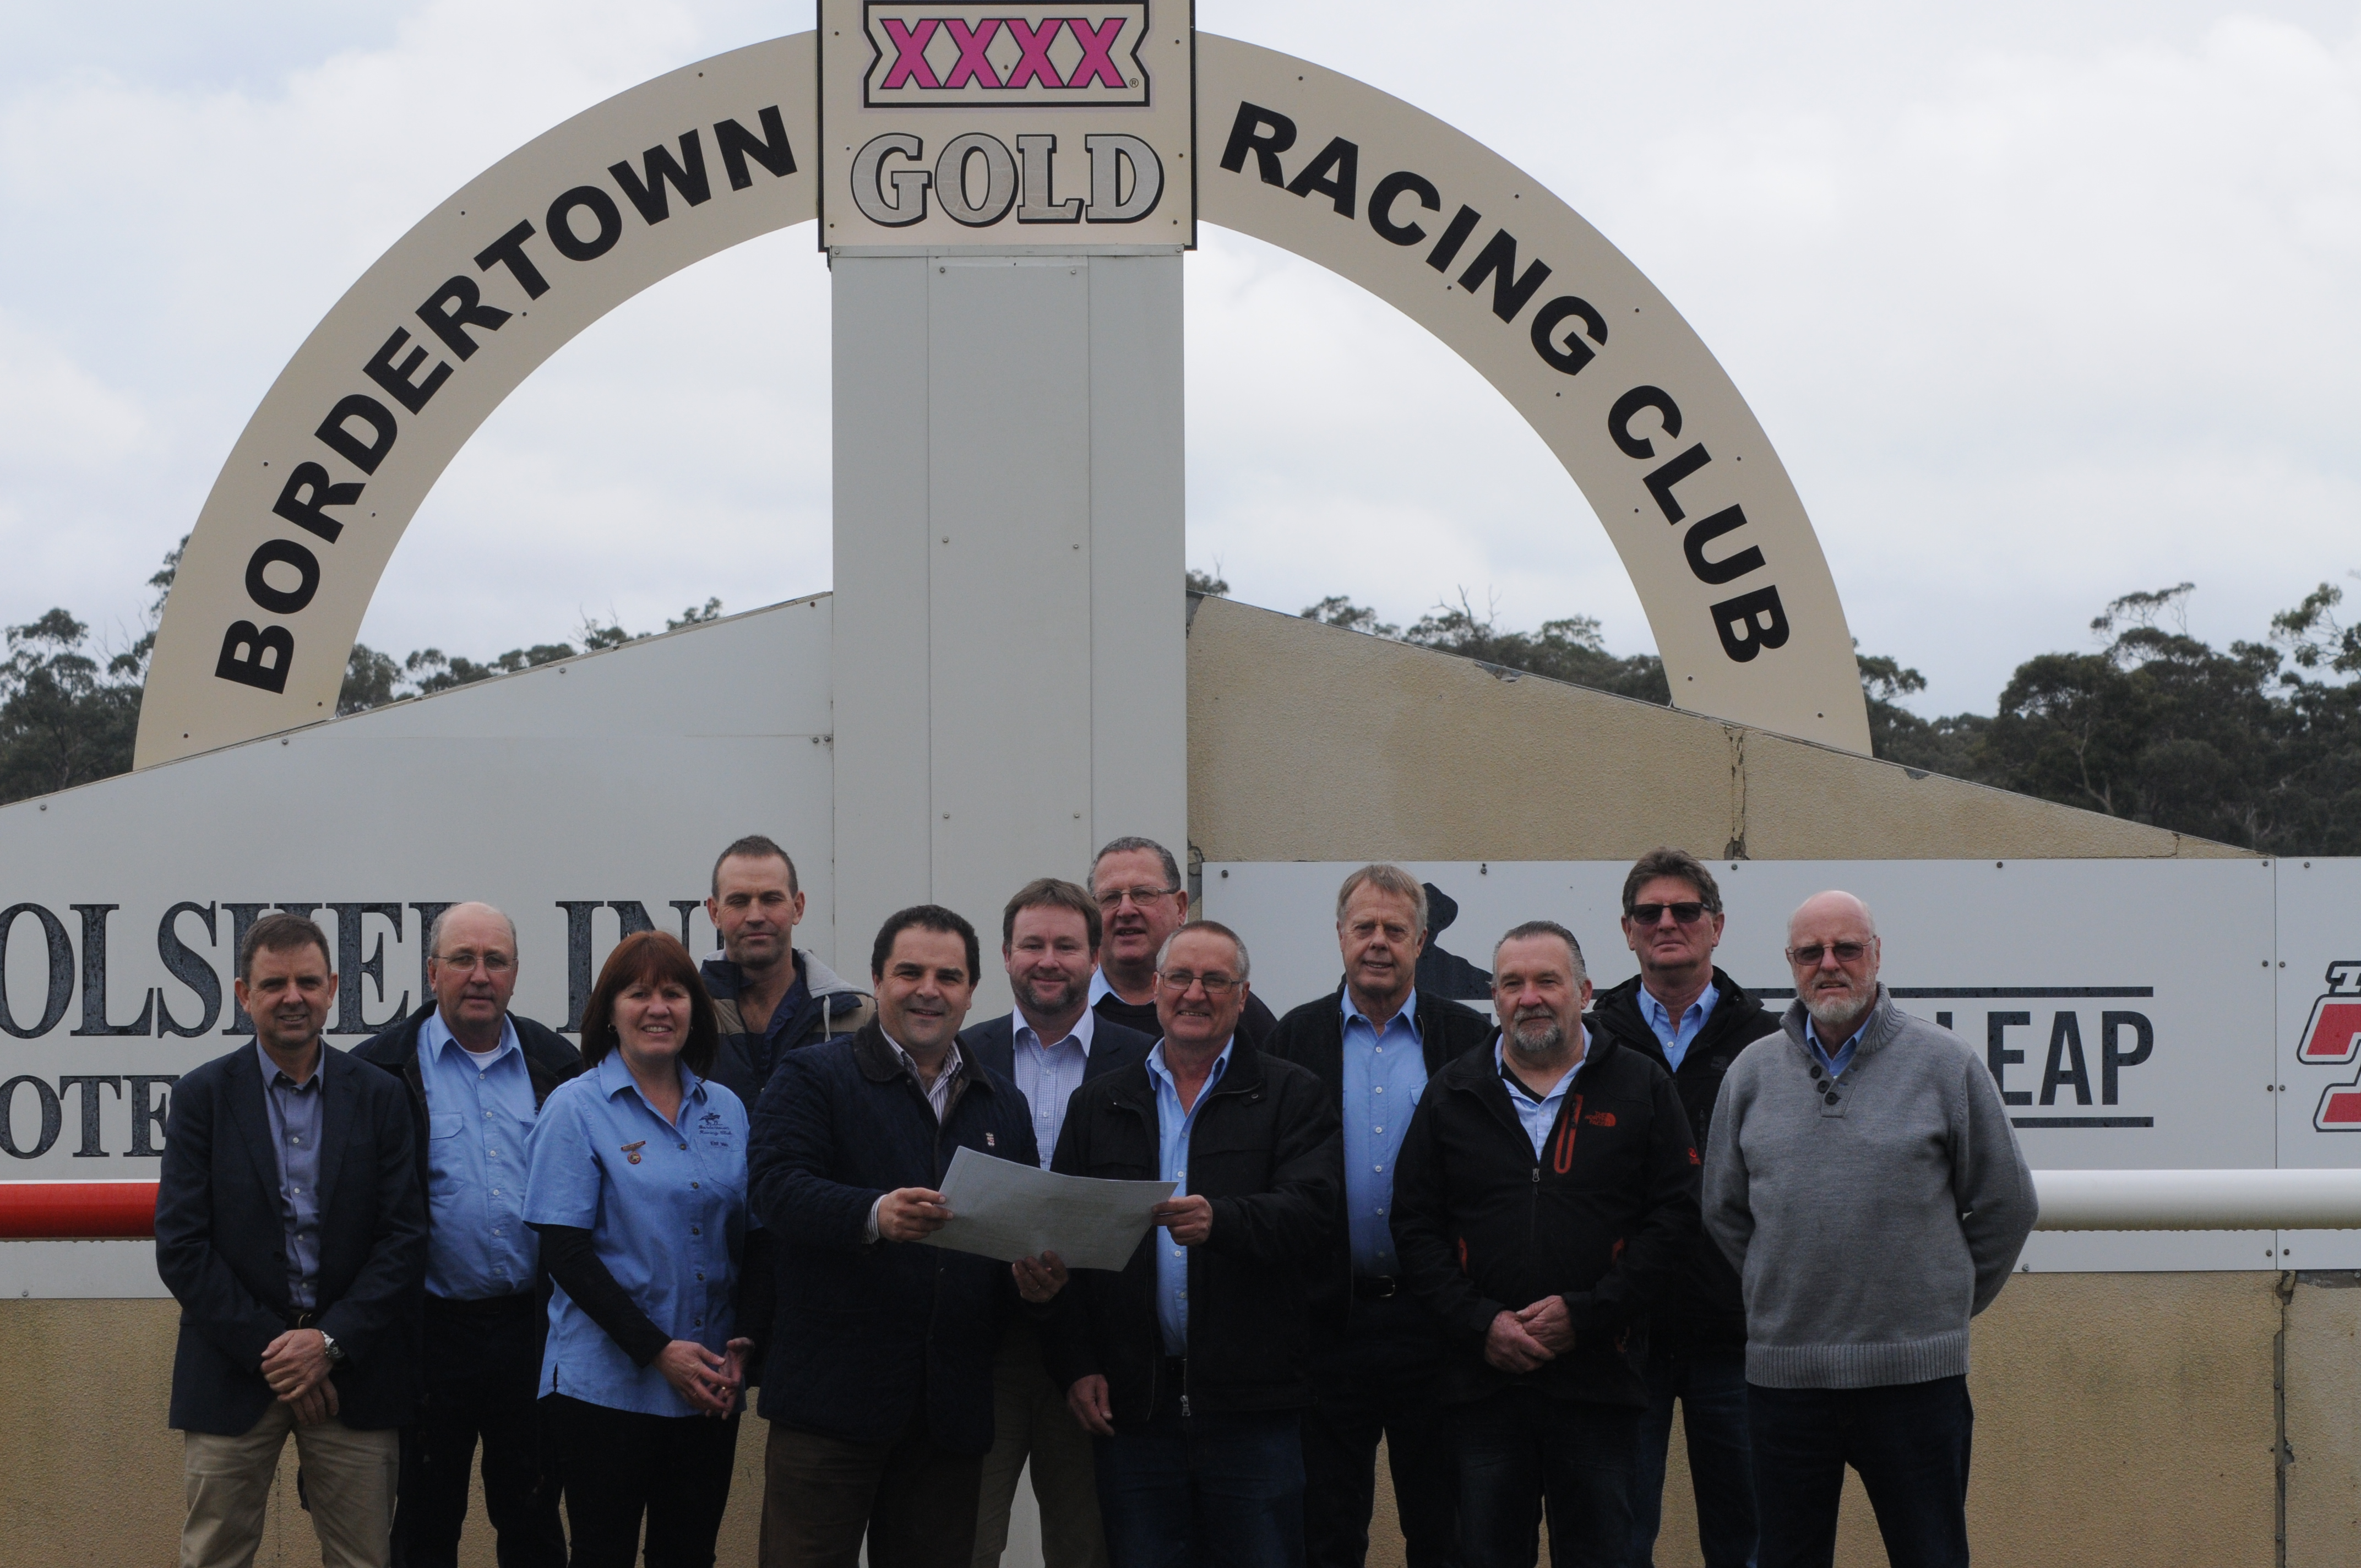 Pasin delivers funding for the Bordertown community